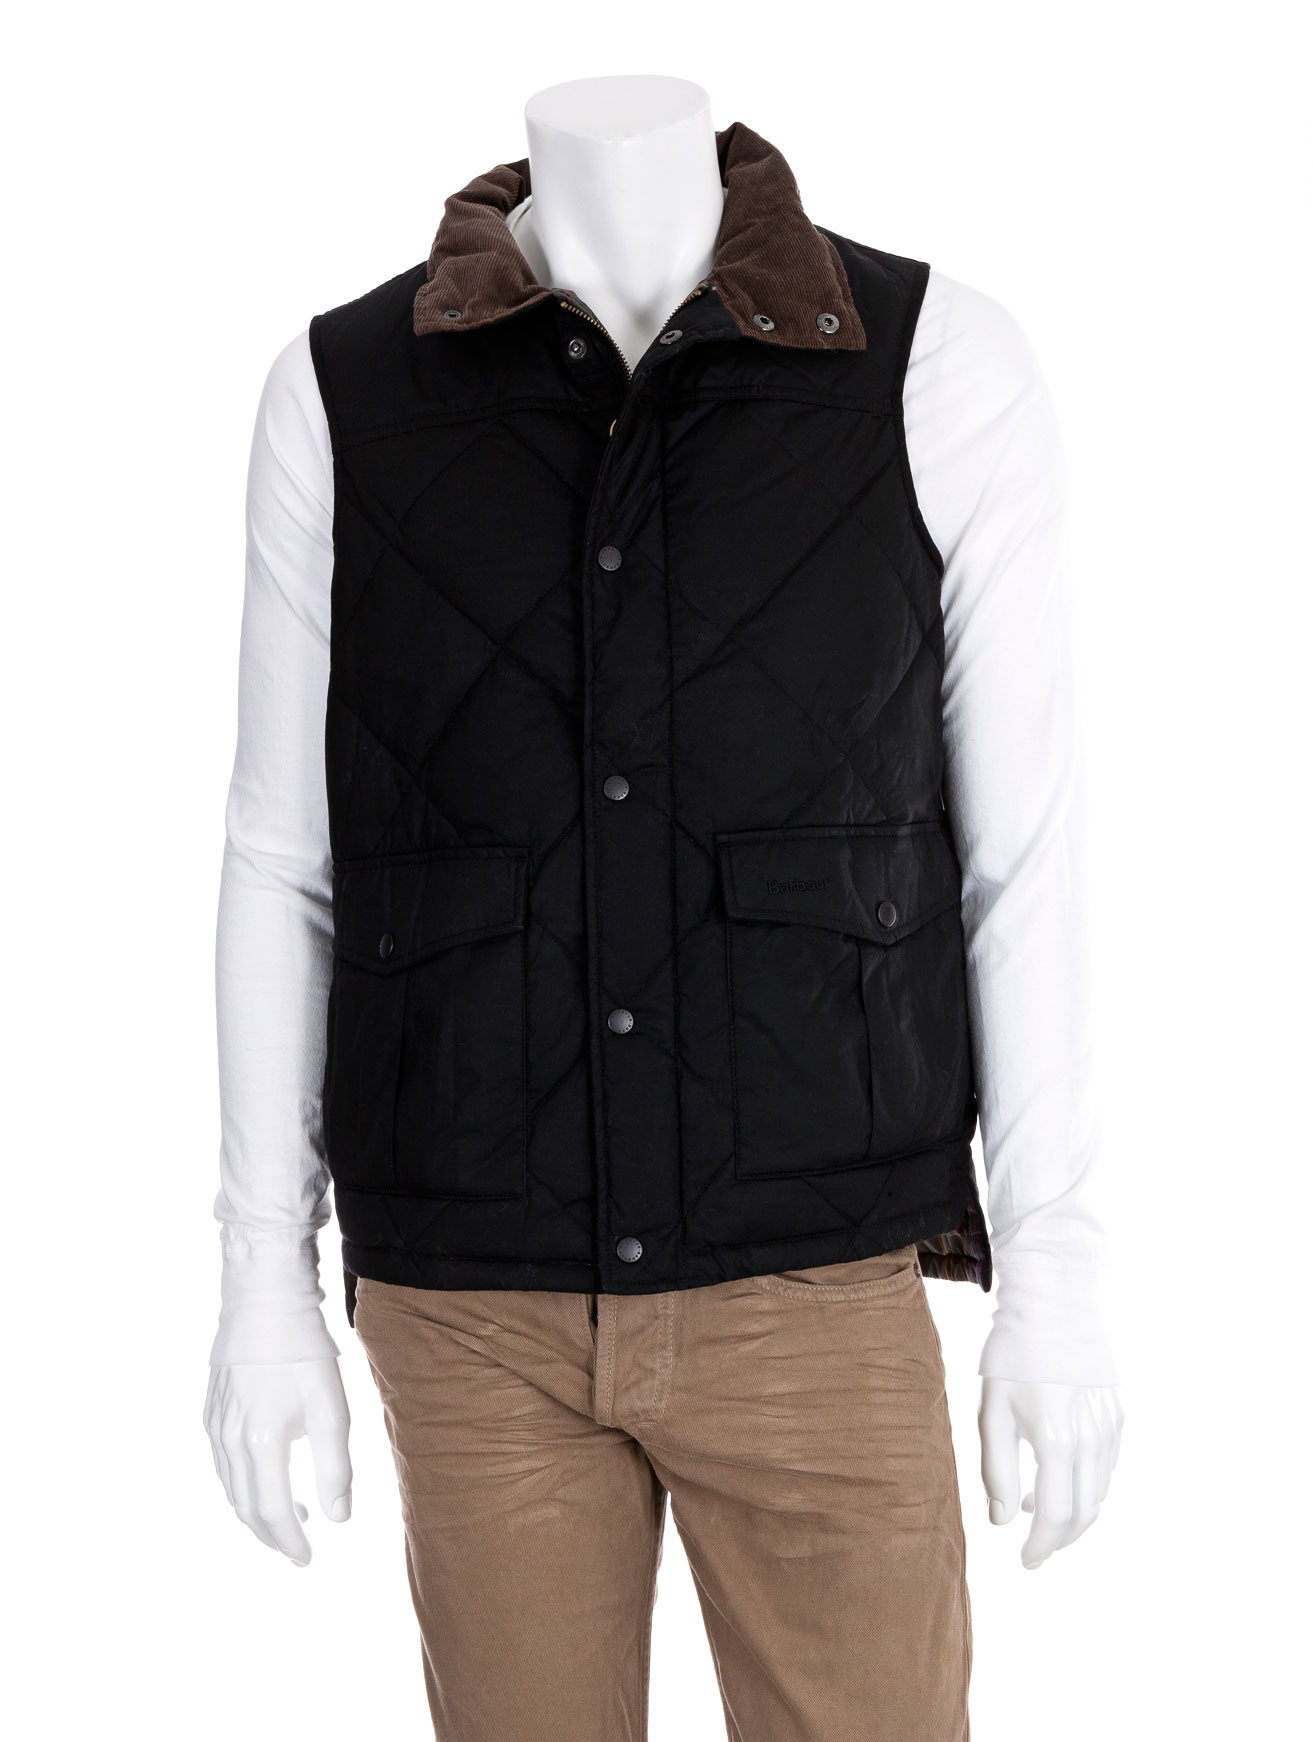 Barbour Quilted Waxed Gilet Vest In Black For Men Lyst